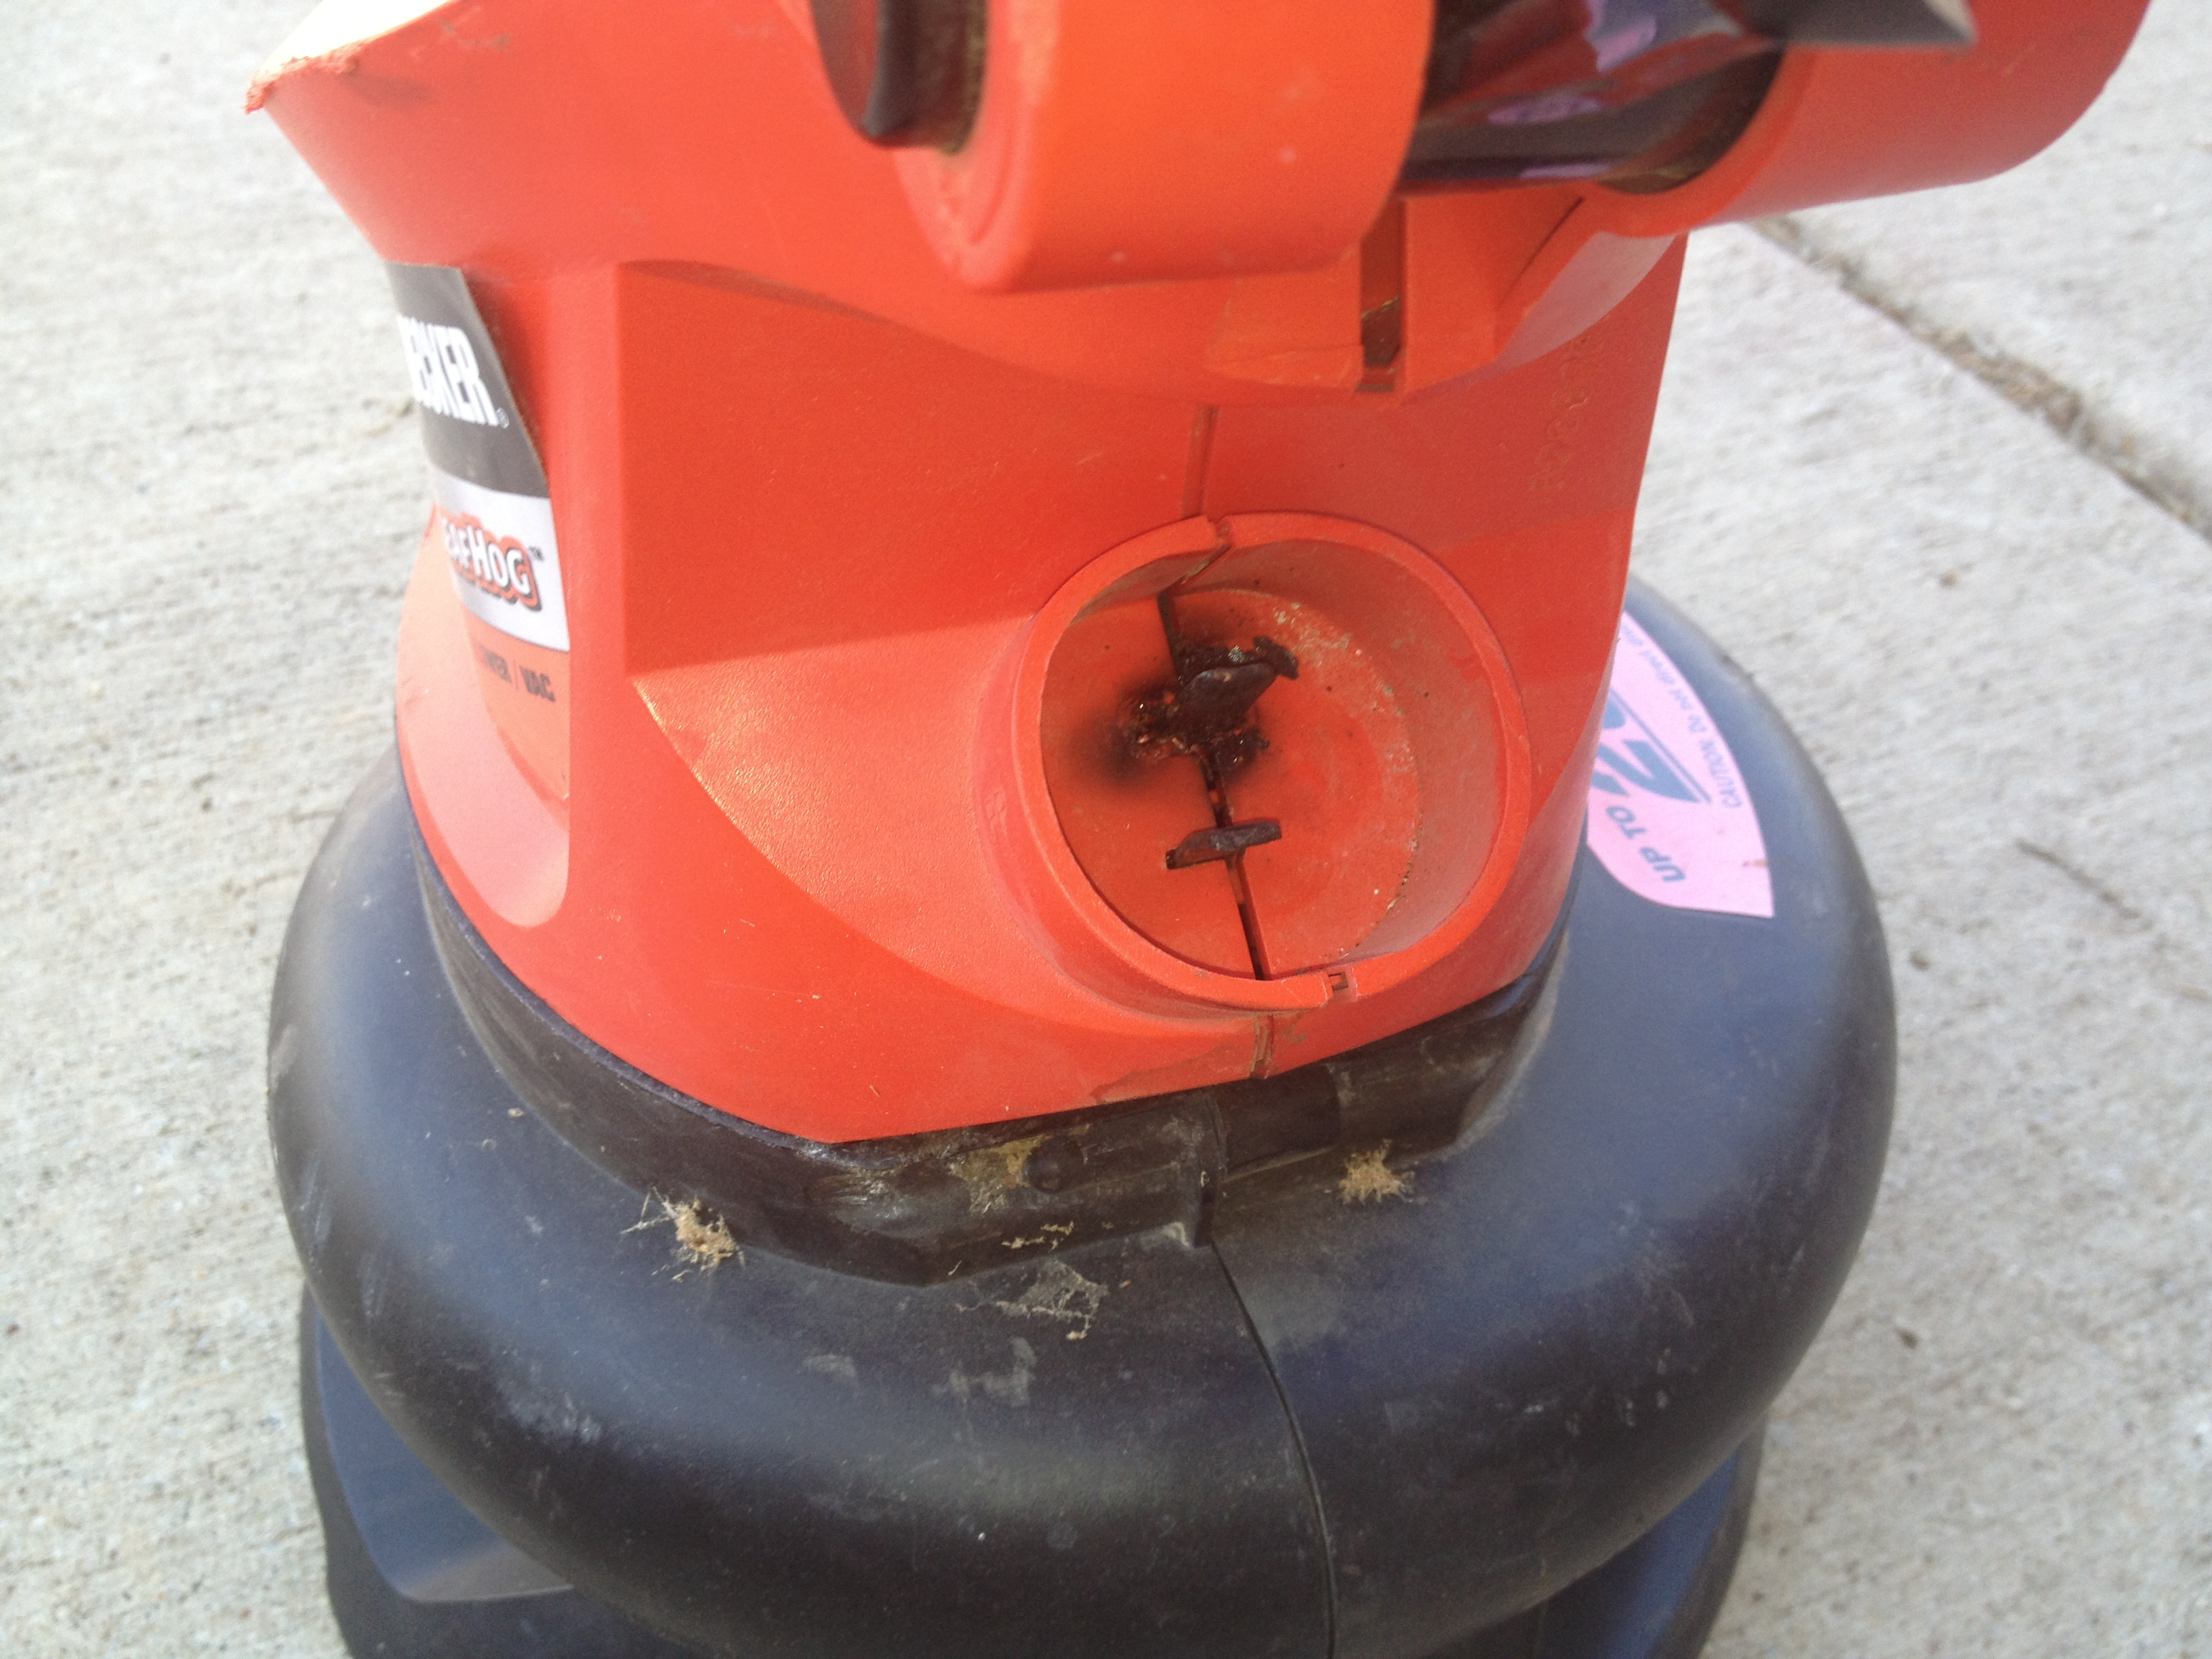 Rigging an electric leaf blower cord, that almost caught on fire and killed me